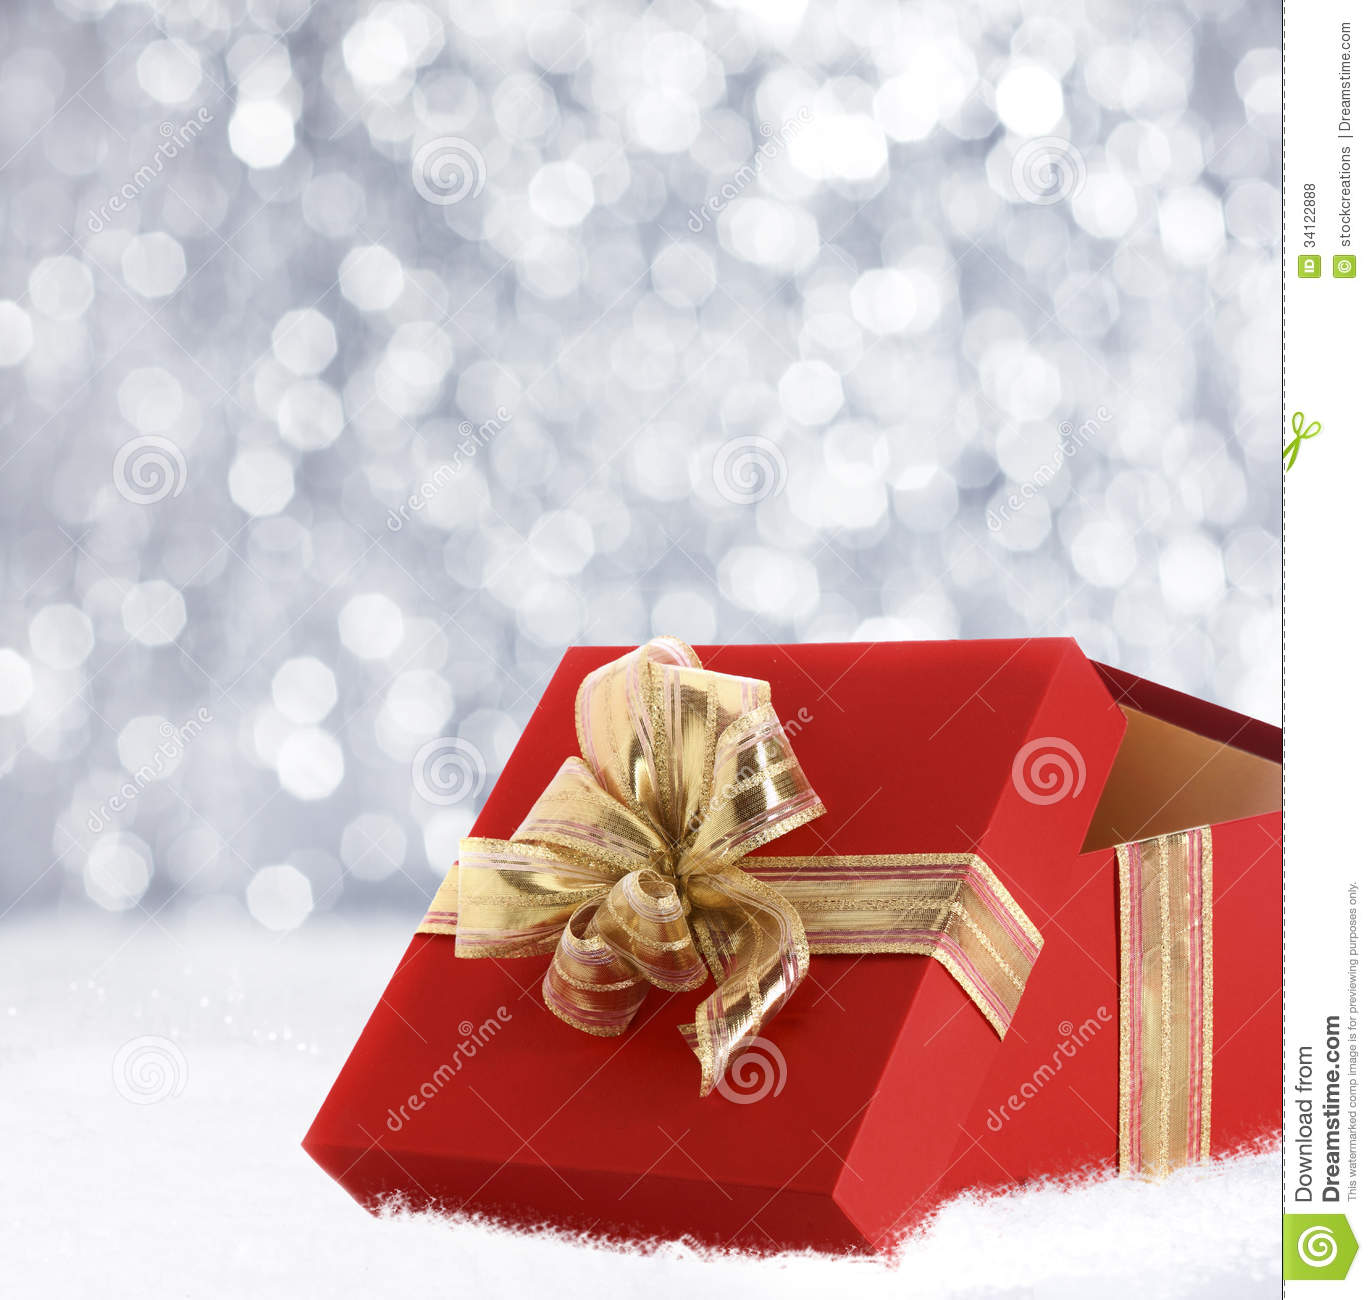 Christmas Gift In Winter Snow Stock Illustration Image